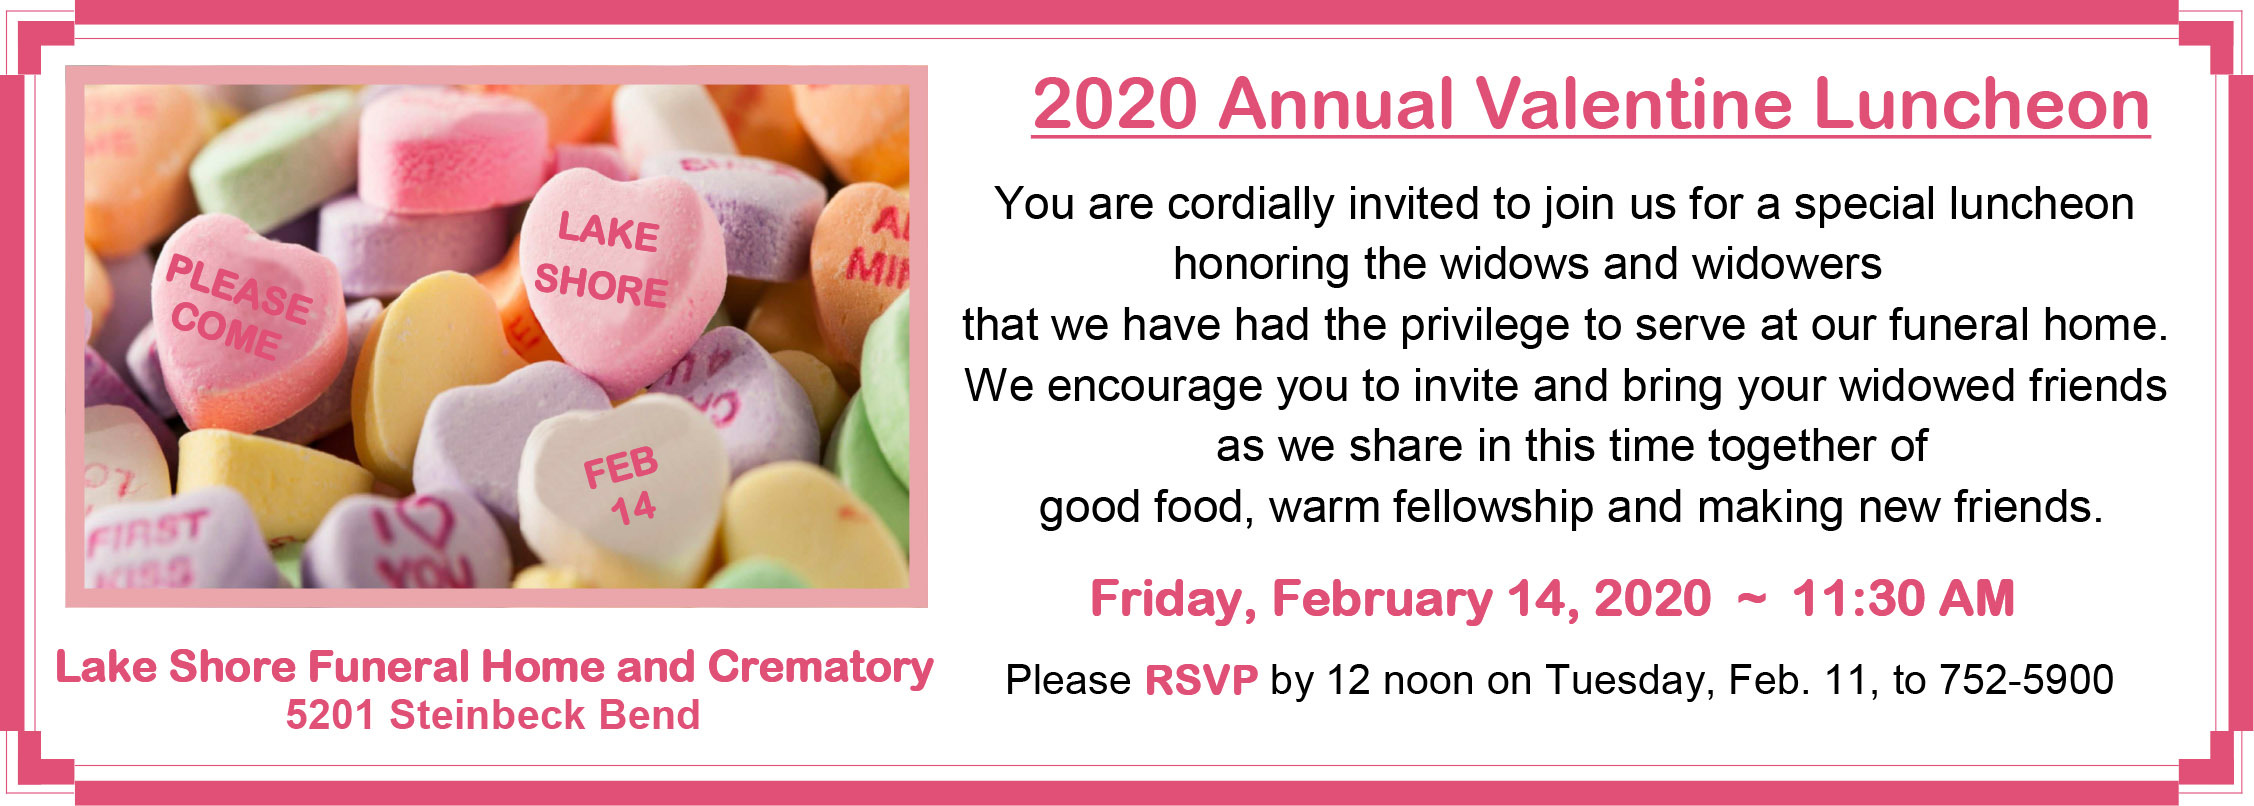 5th Annual Widowed Valentine Luncheon